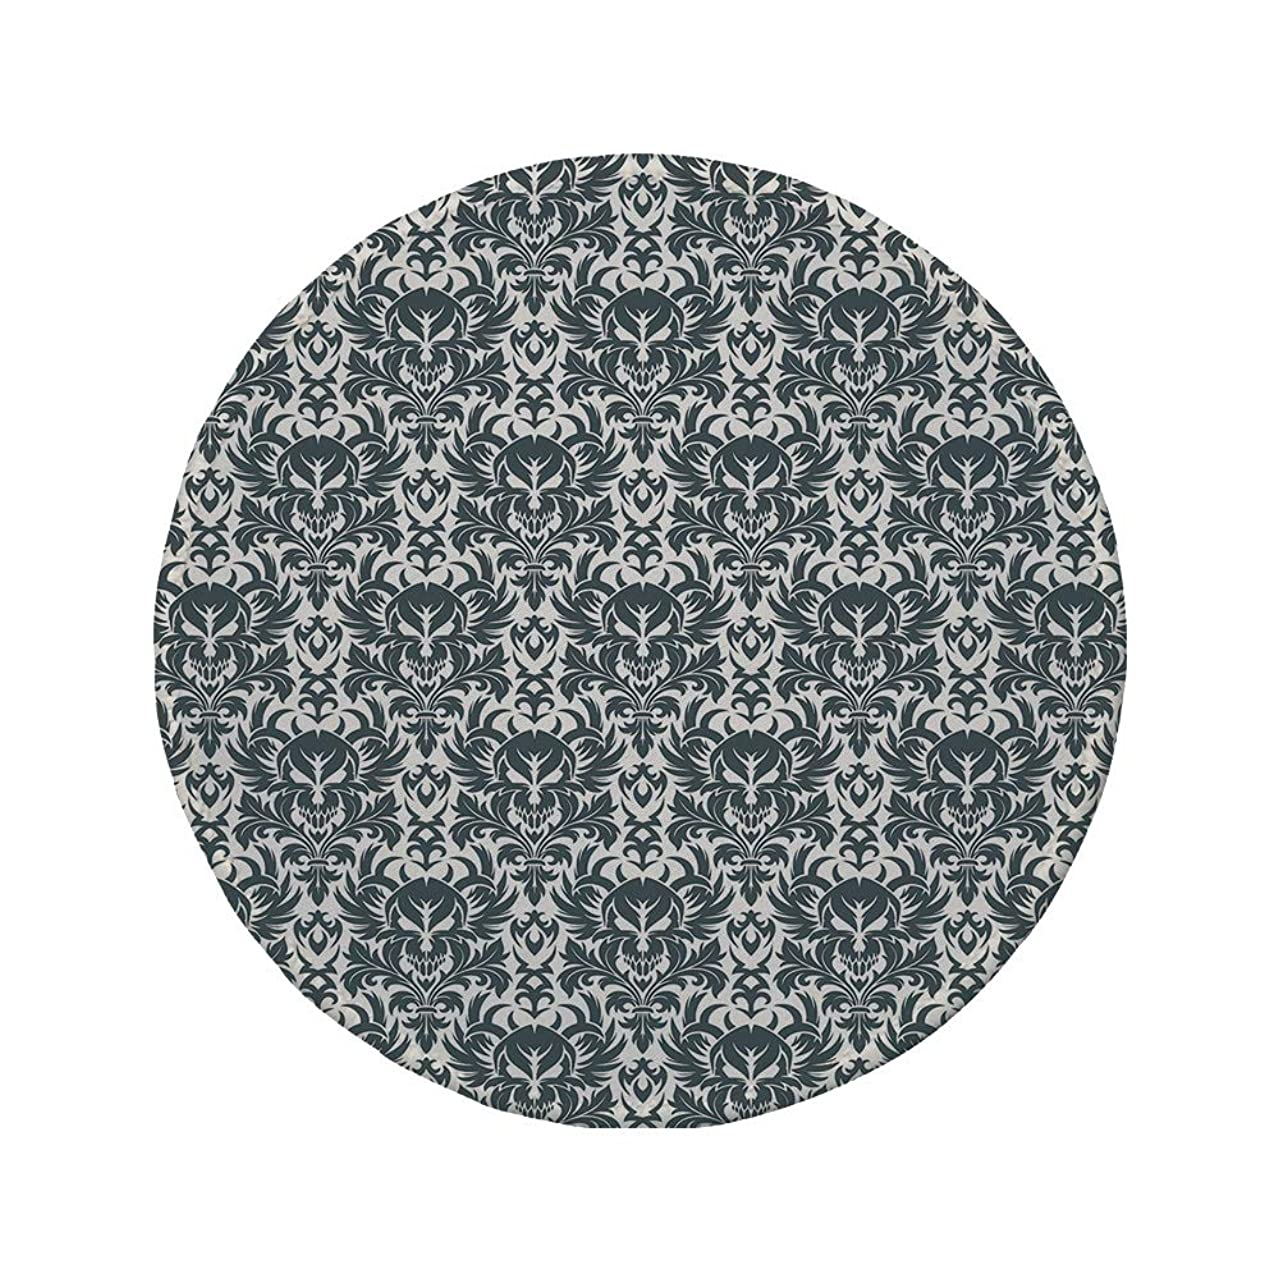 Non-Slip Rubber Round Mouse Pad,Gothic,Damask Inspired Ornamental Flourishes Abstract Floral Skull Motif Royal Foliage Decorative,Grey White,11.8